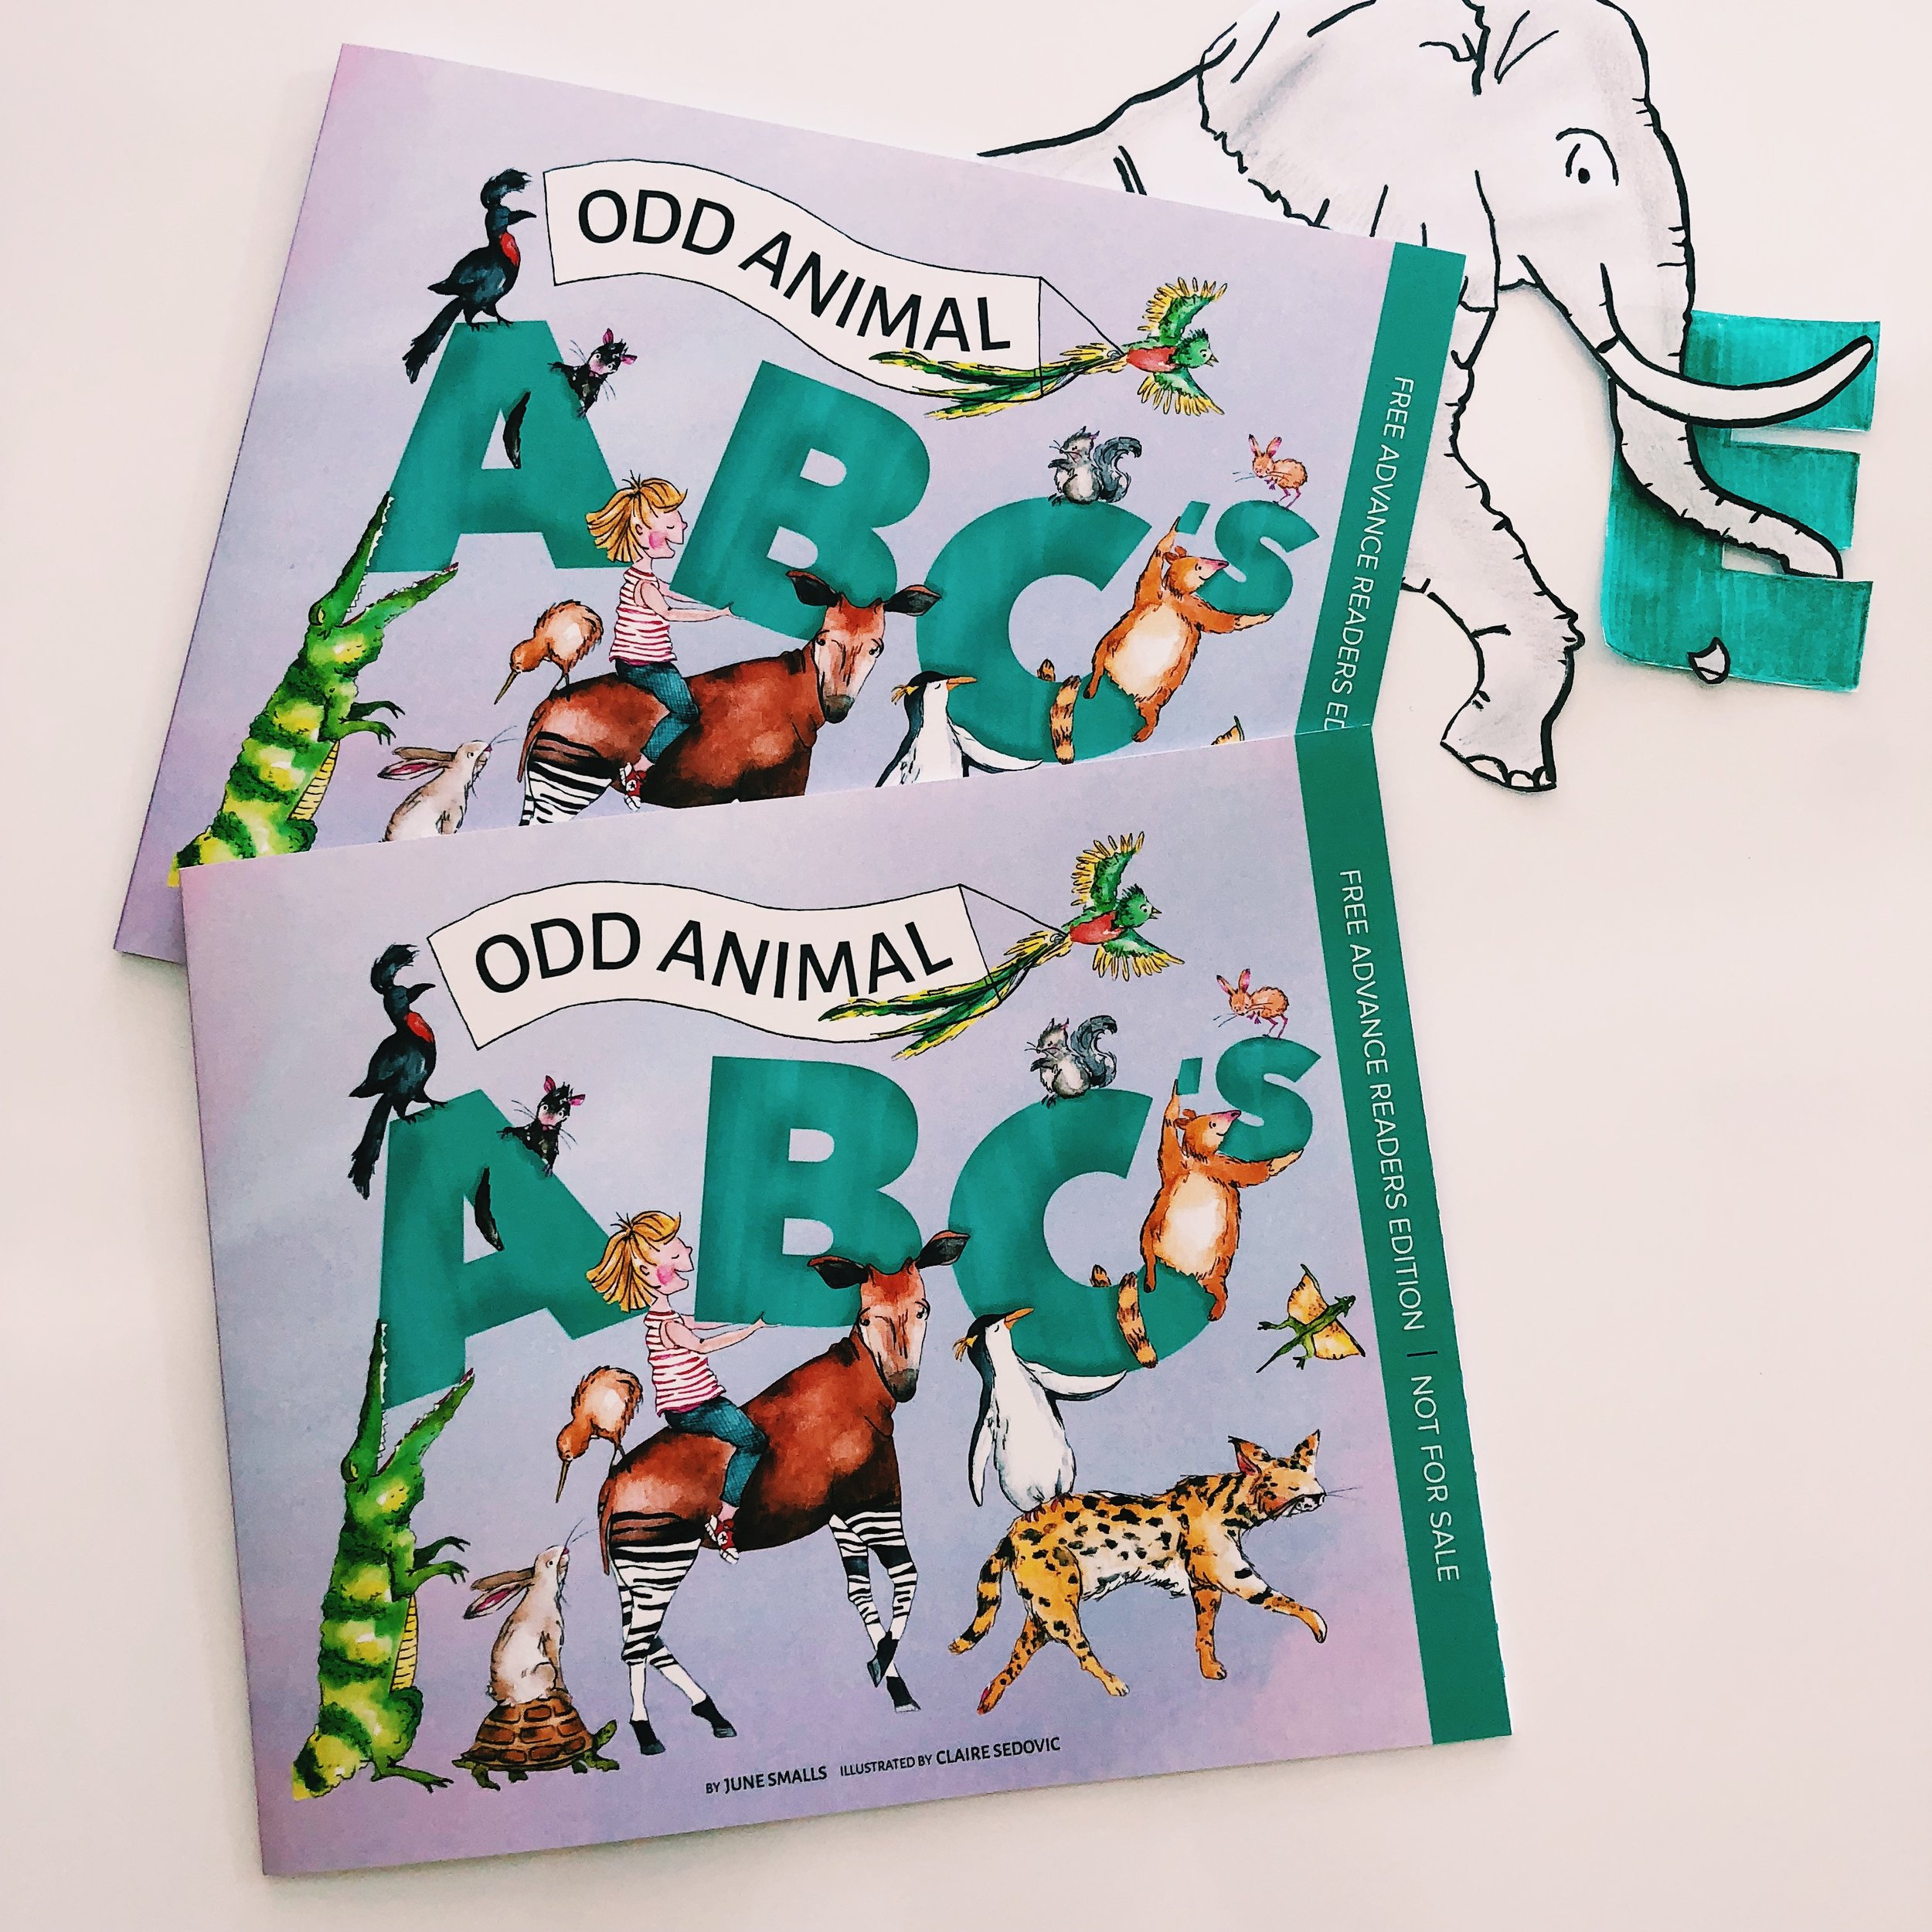 blue manatee press_odd animal abcs_3.JPG